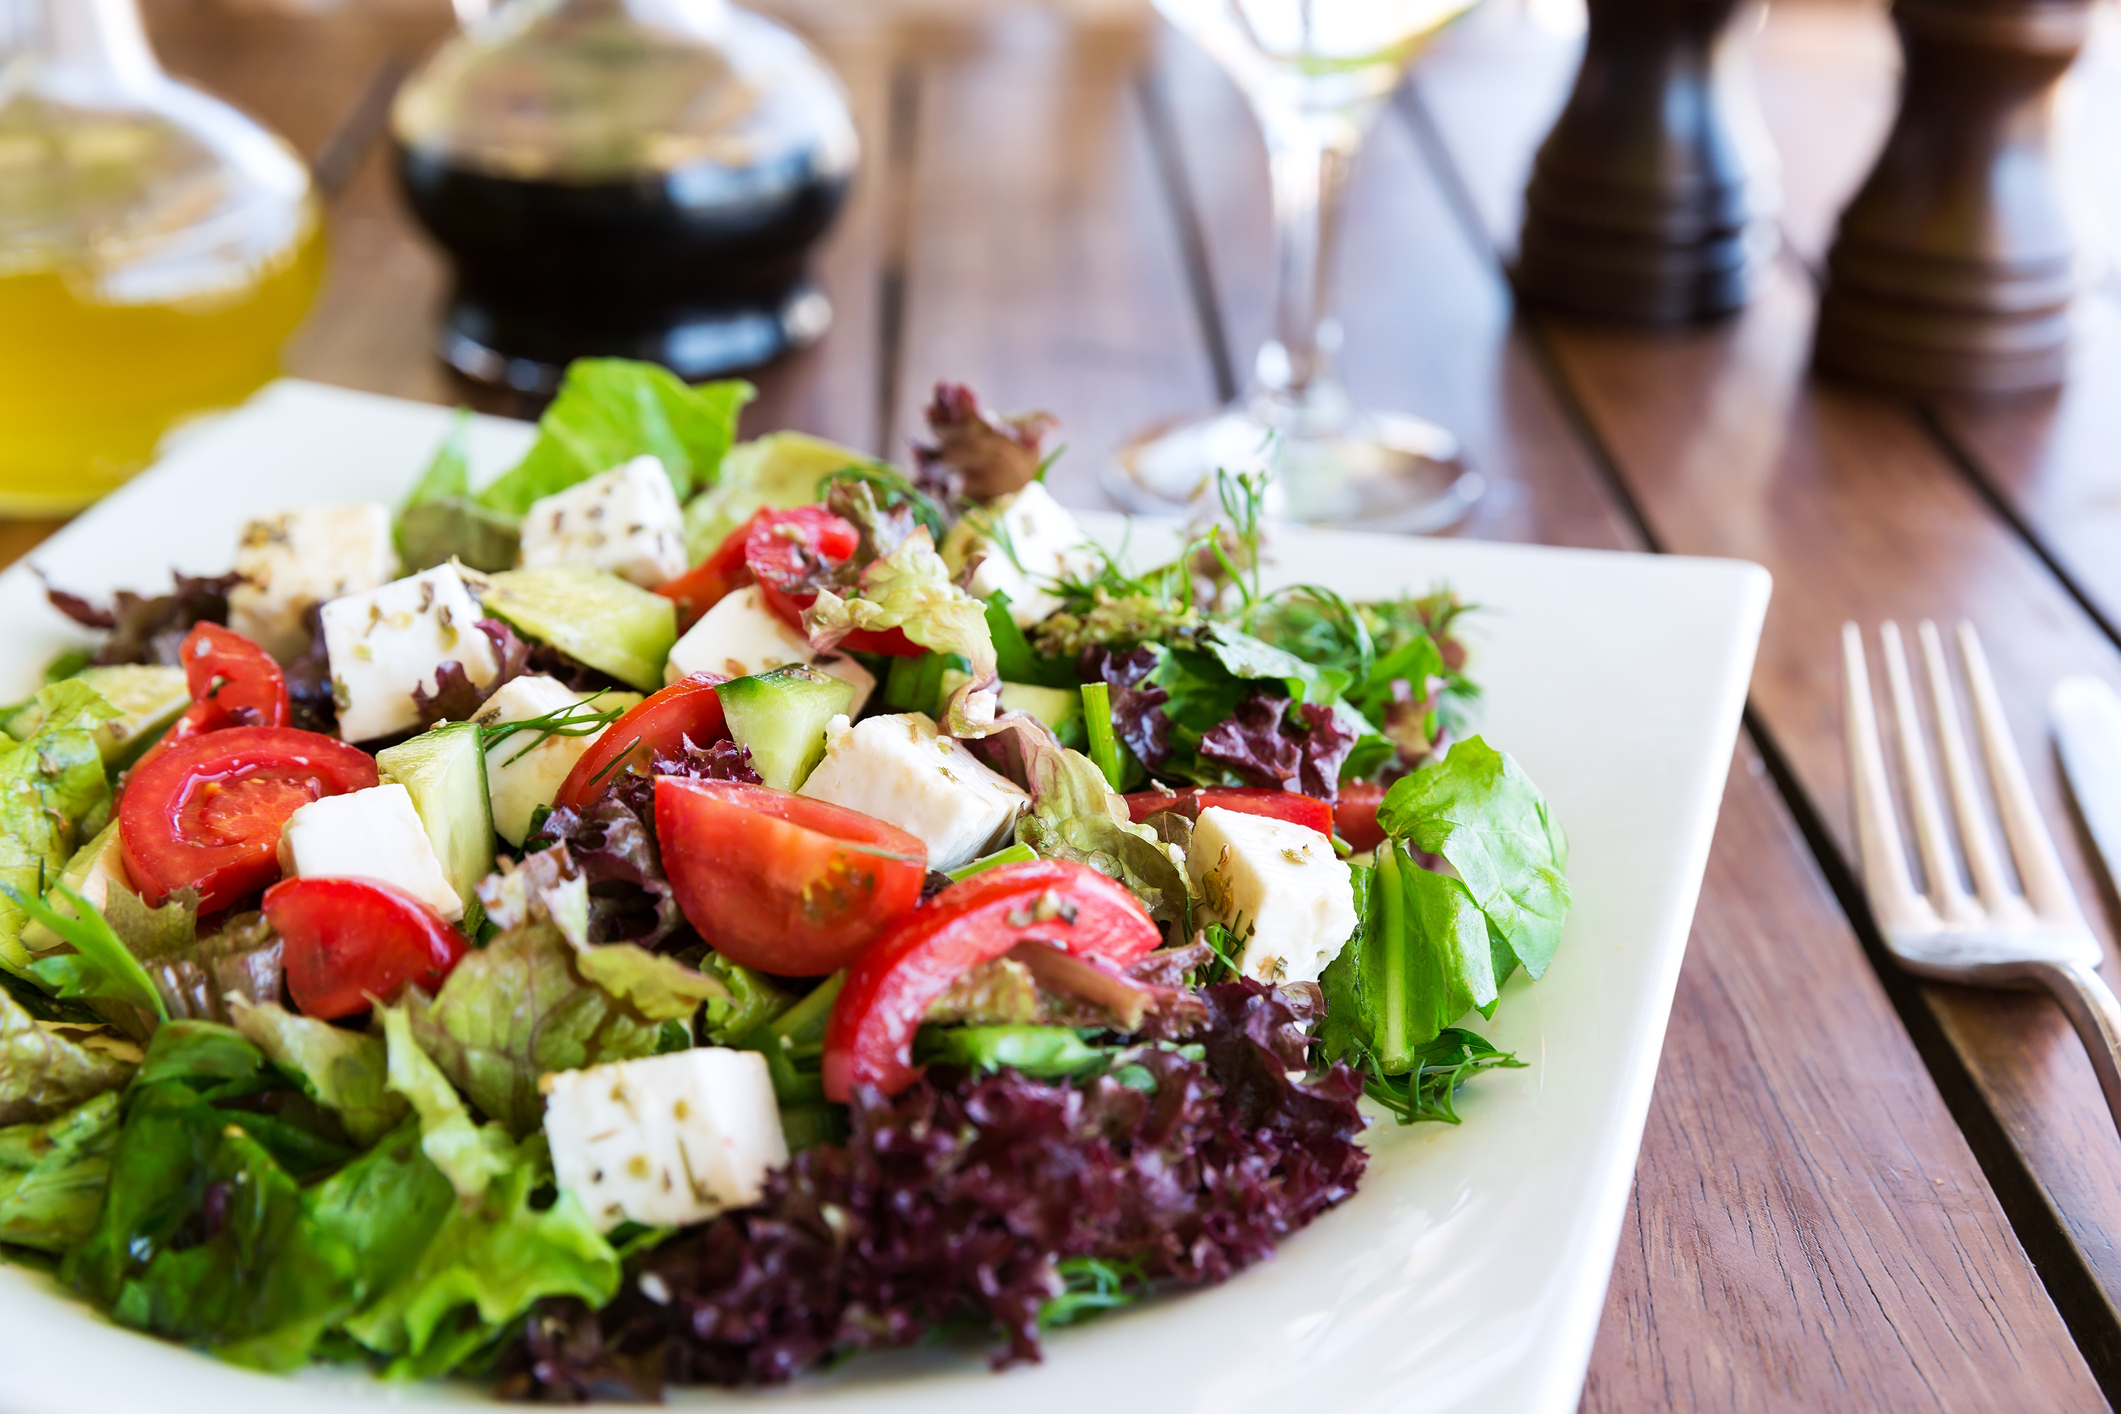 Load up on low carb salads.